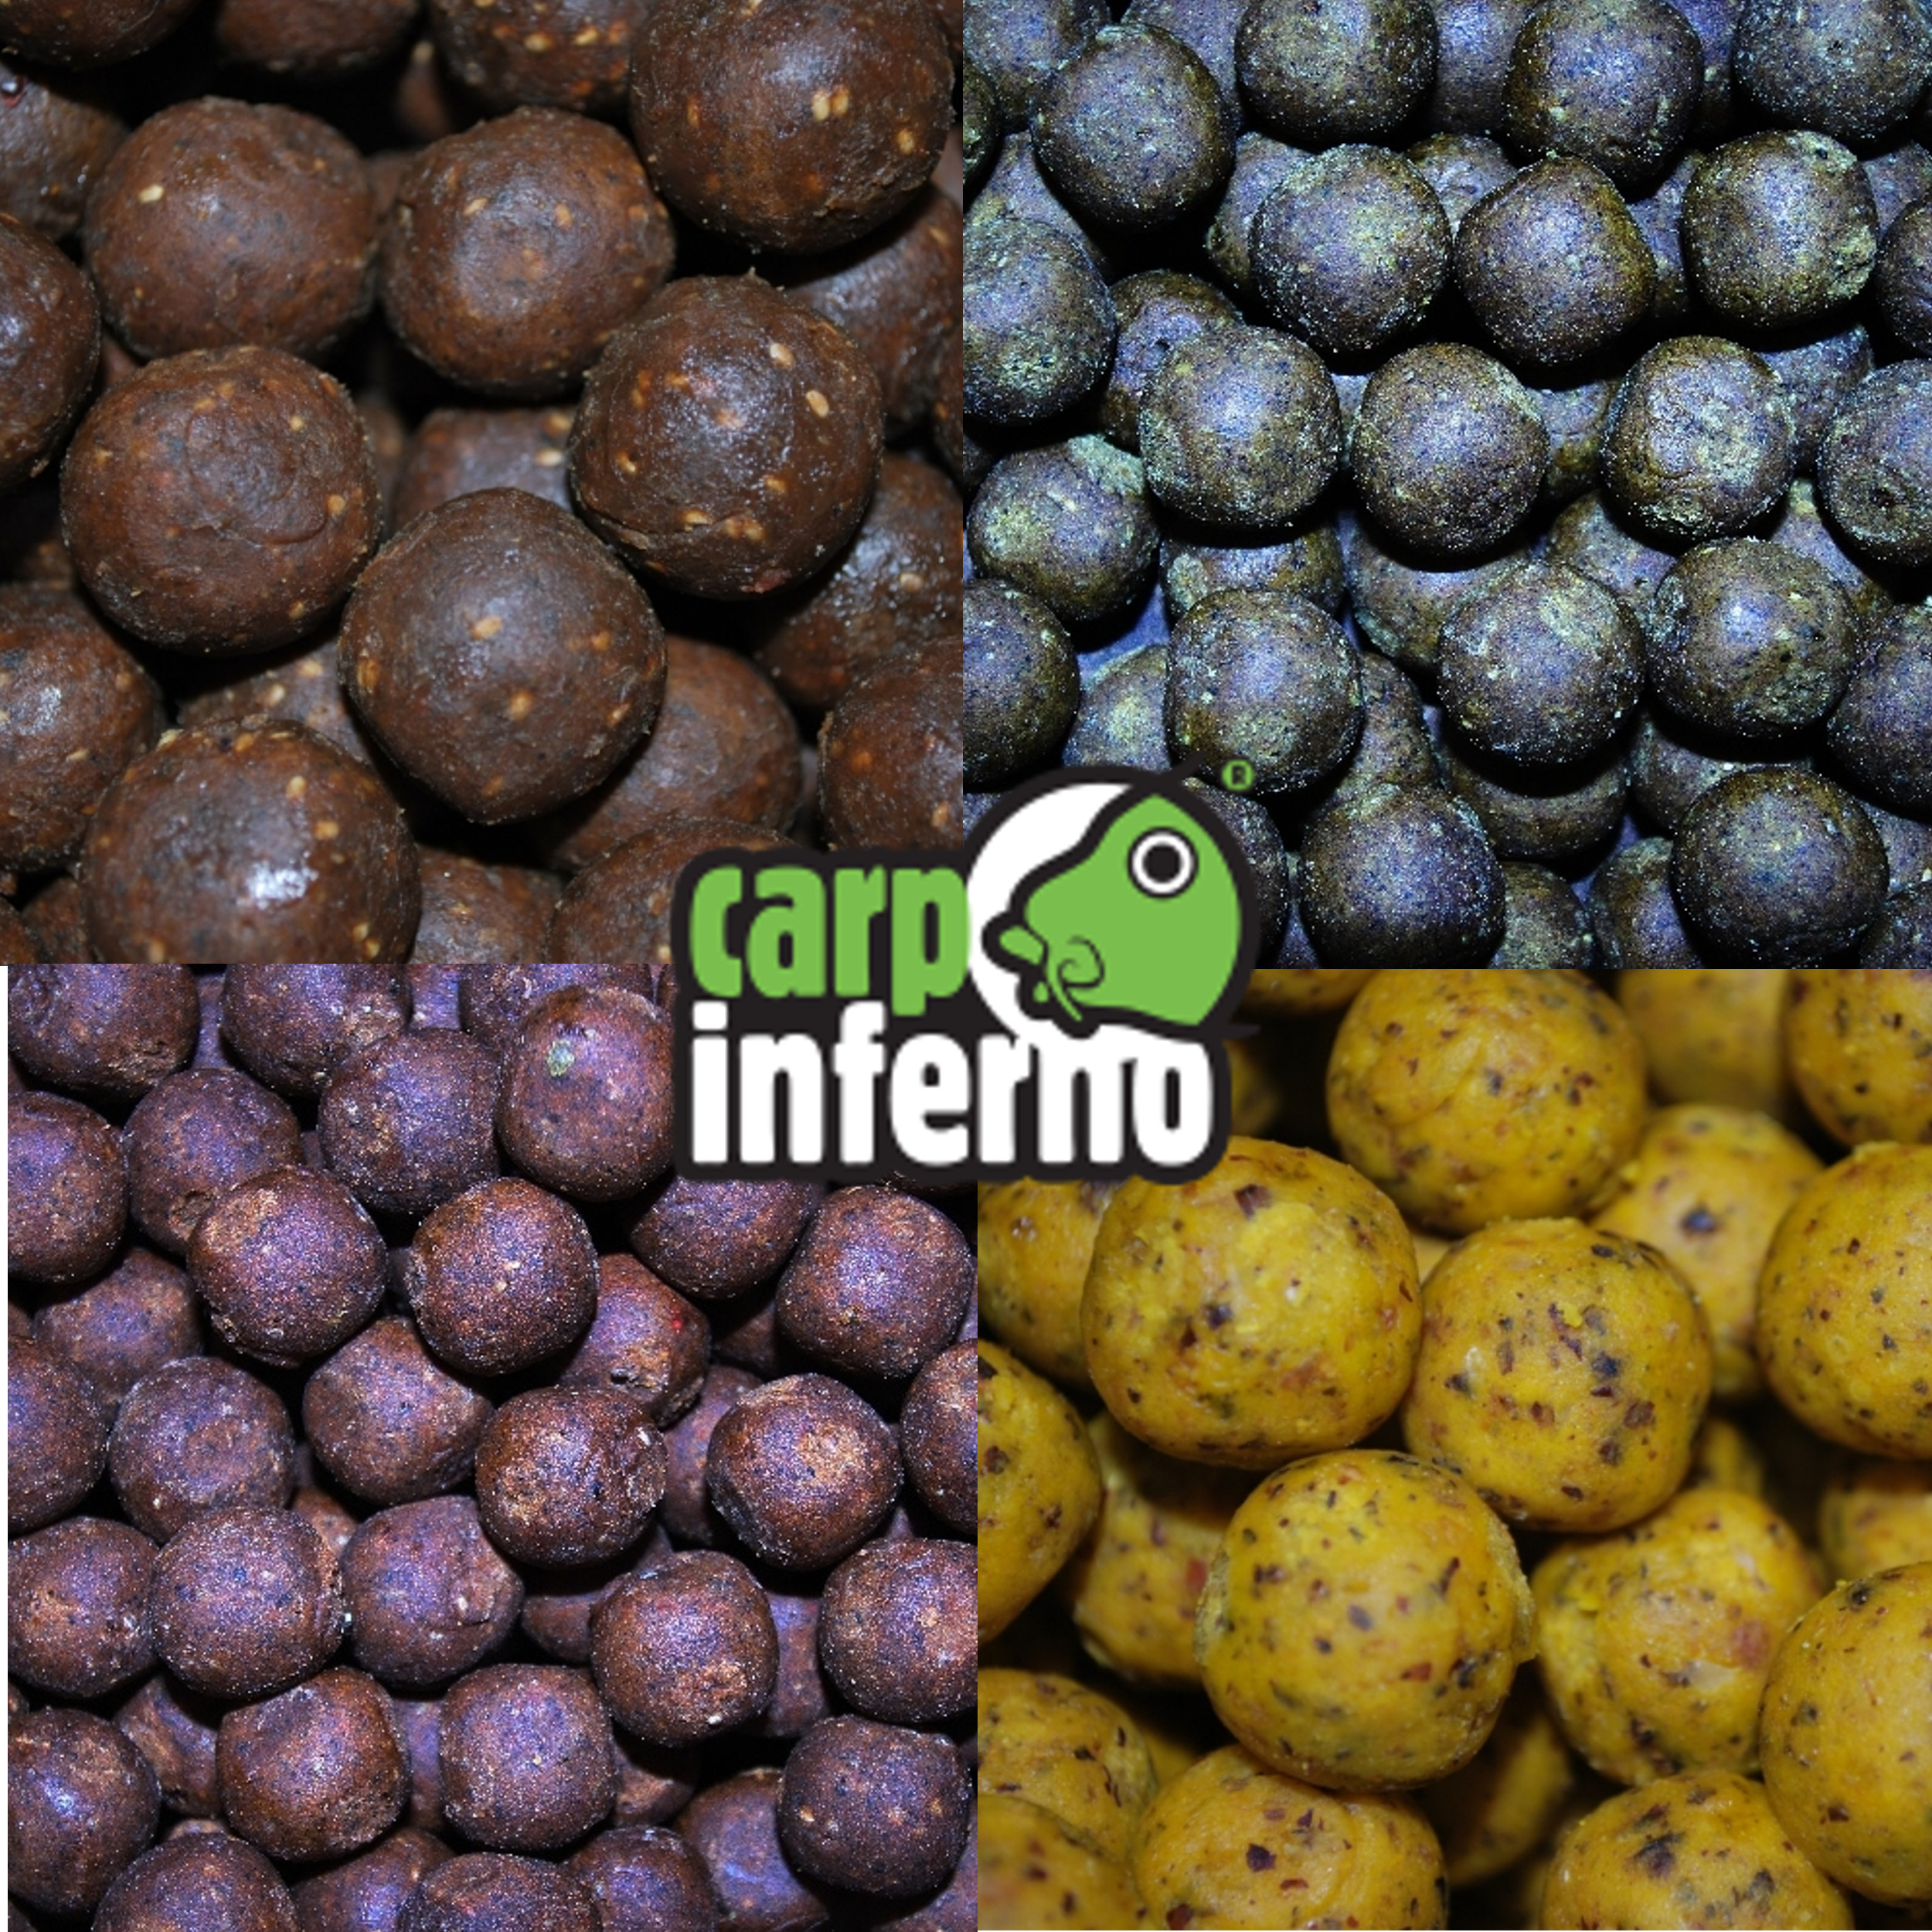 CARP INFERNO Boilies Ocean food|Krill & Octopus - 20mm, 1kg